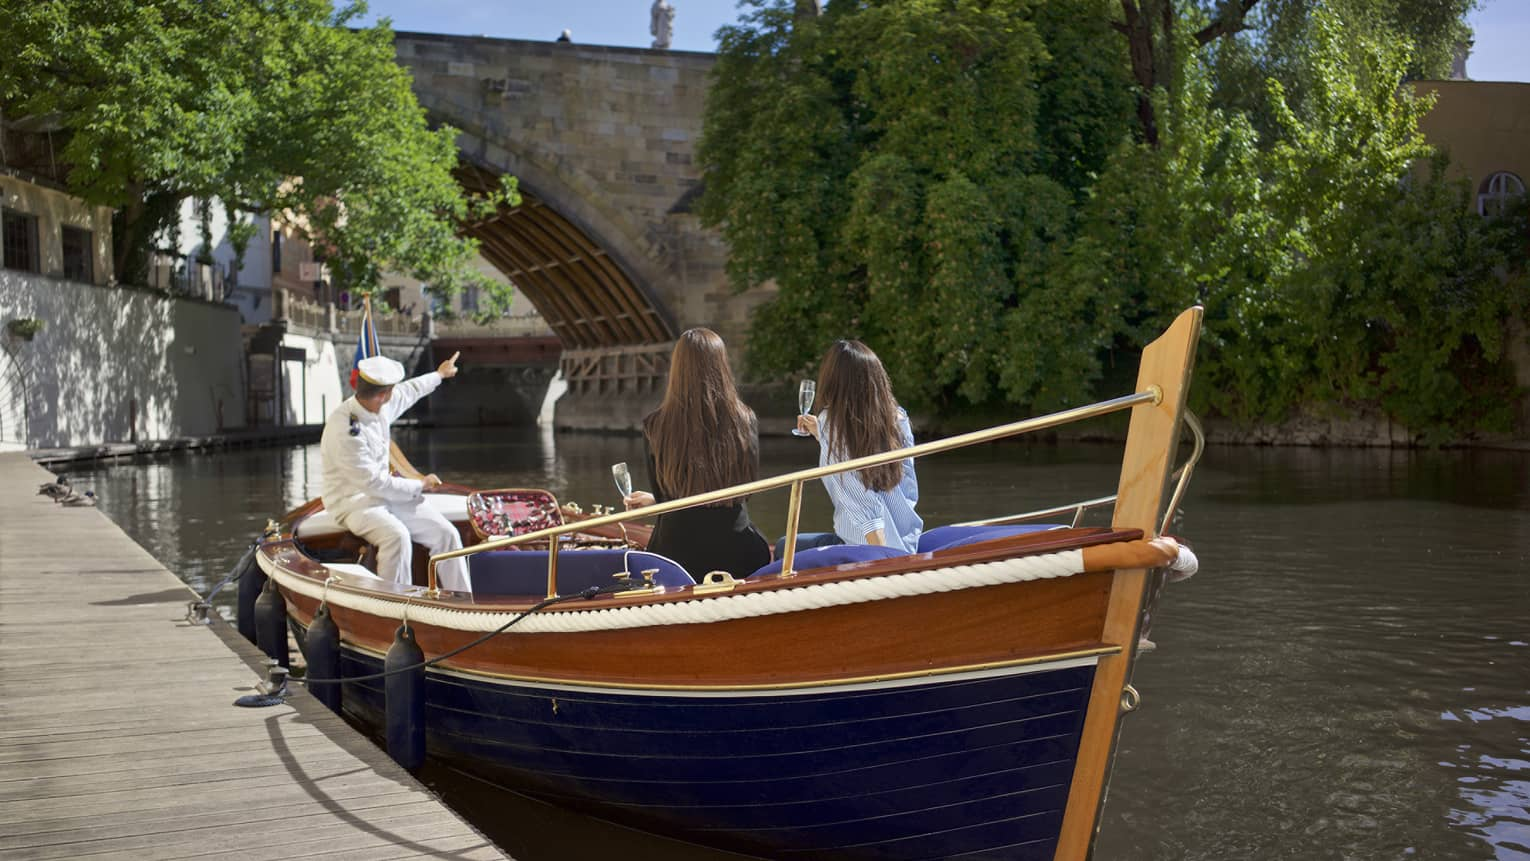 Small boat parked at dock on river, captain in white uniform points to bridge as two women drink Champagne